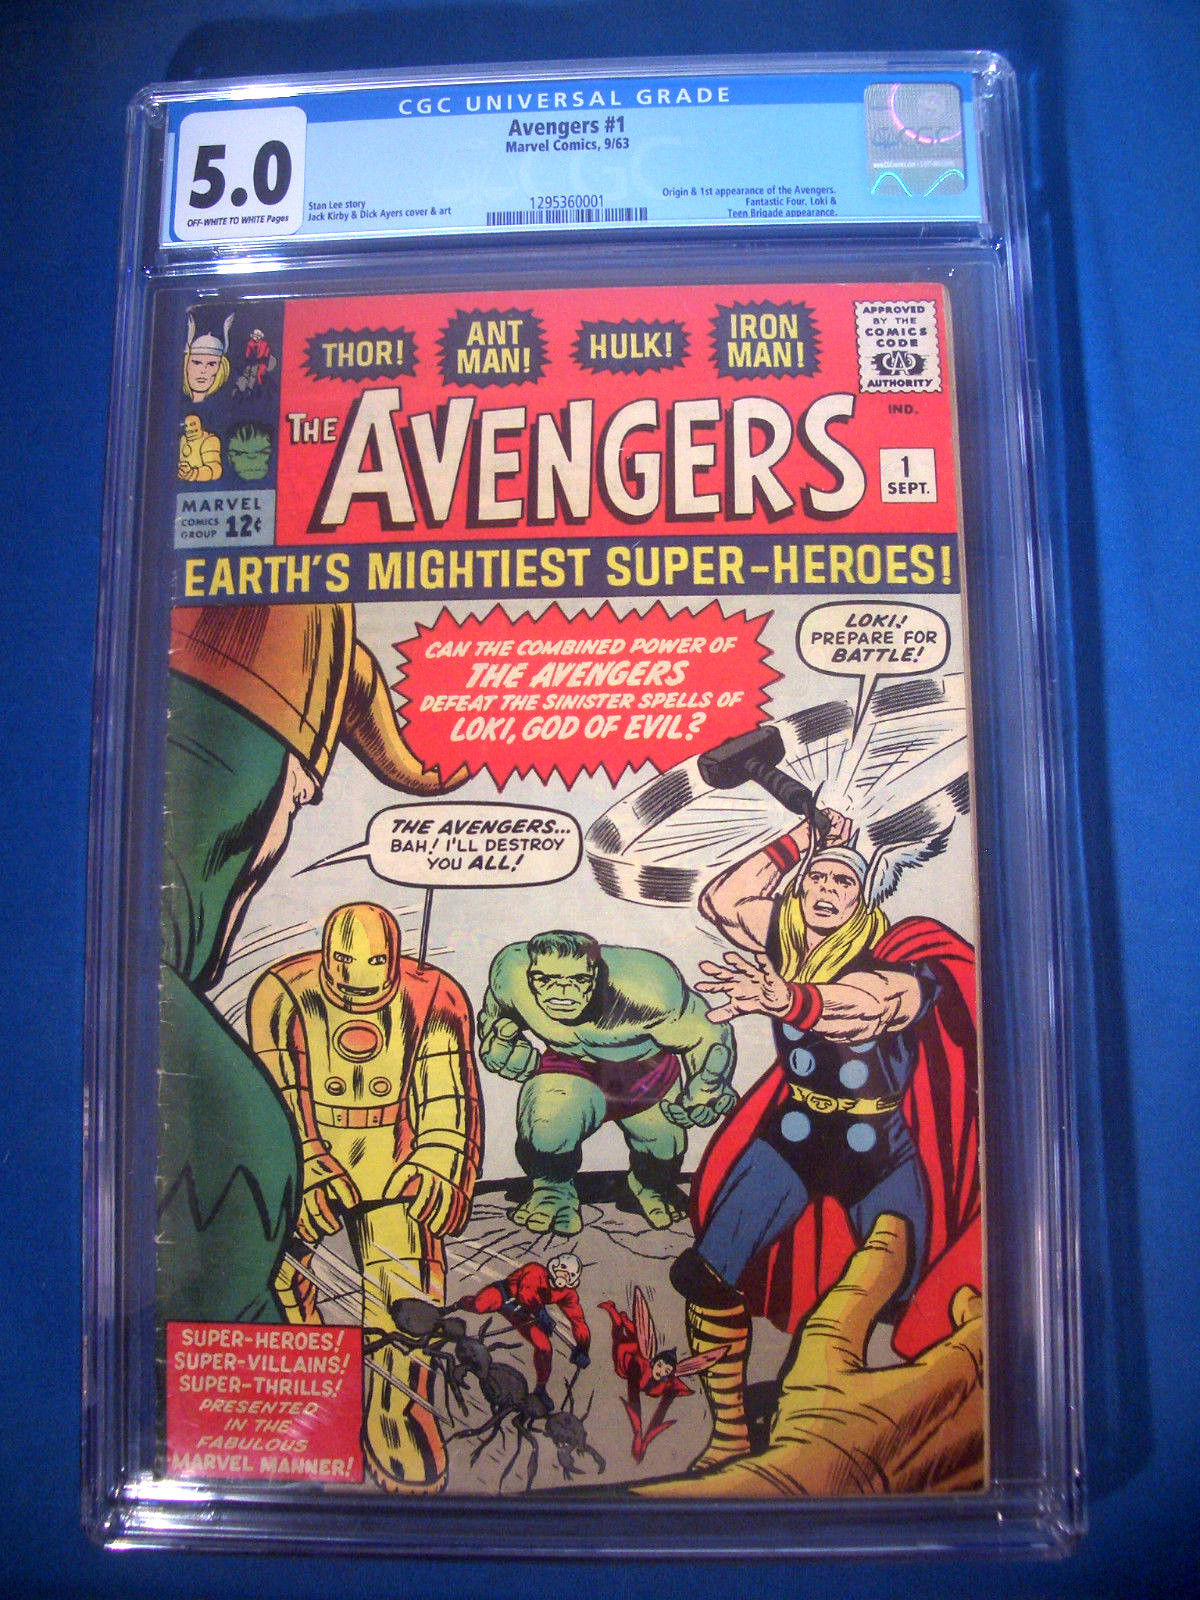 1963 * The AVENGERS #1 * Marvel Comics CGC 5.0 VG/FN Rare WHITE Pages ORIGIN 1st